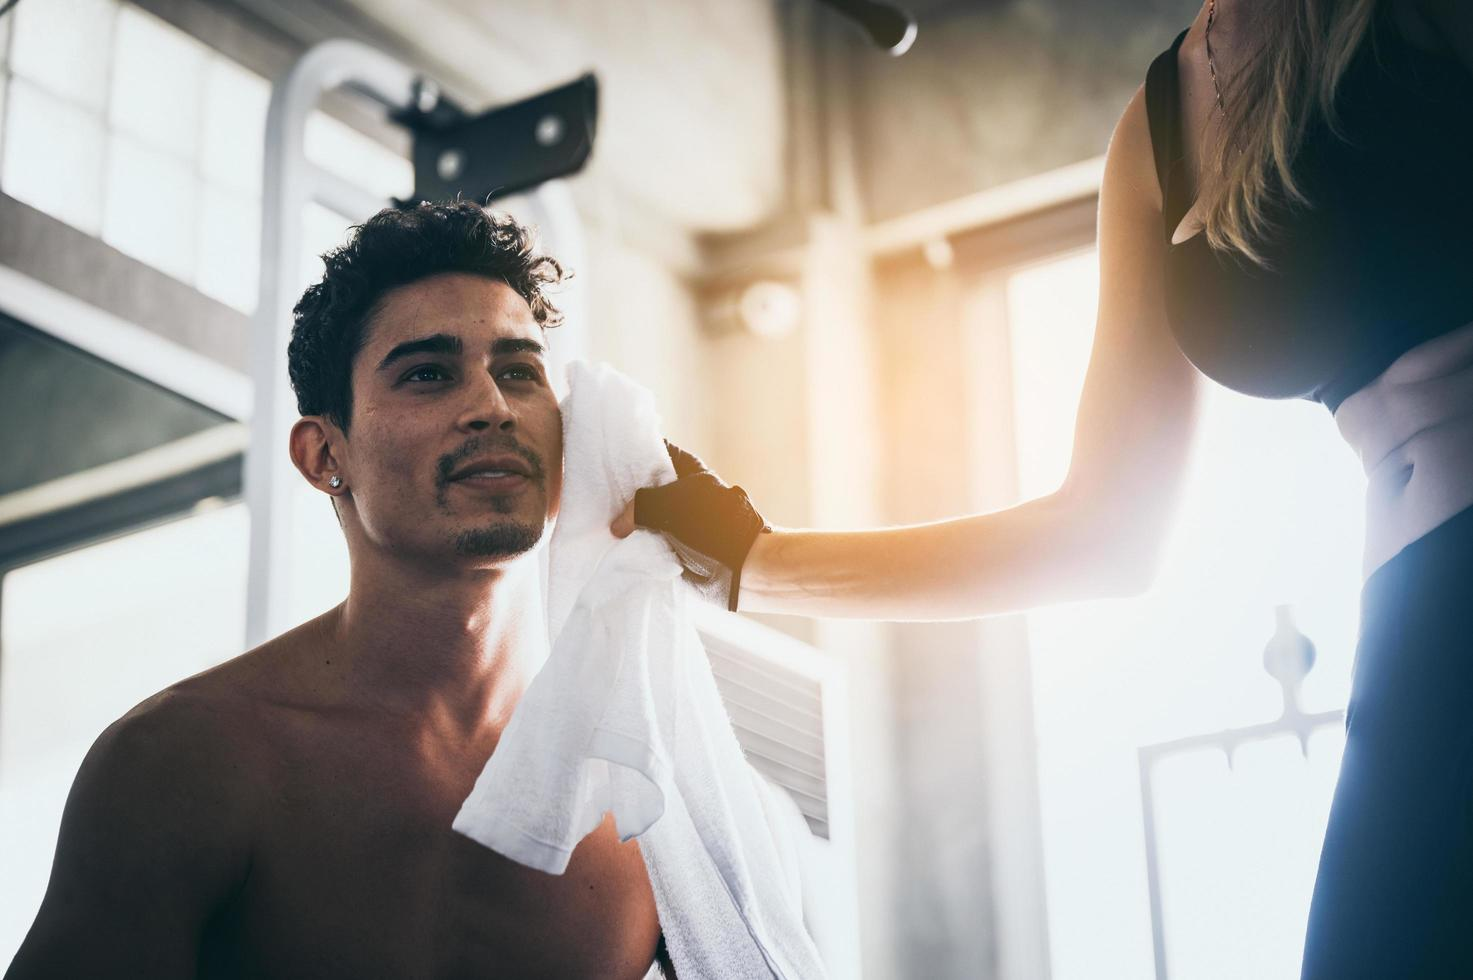 Woman wipes sweat from man's face photo